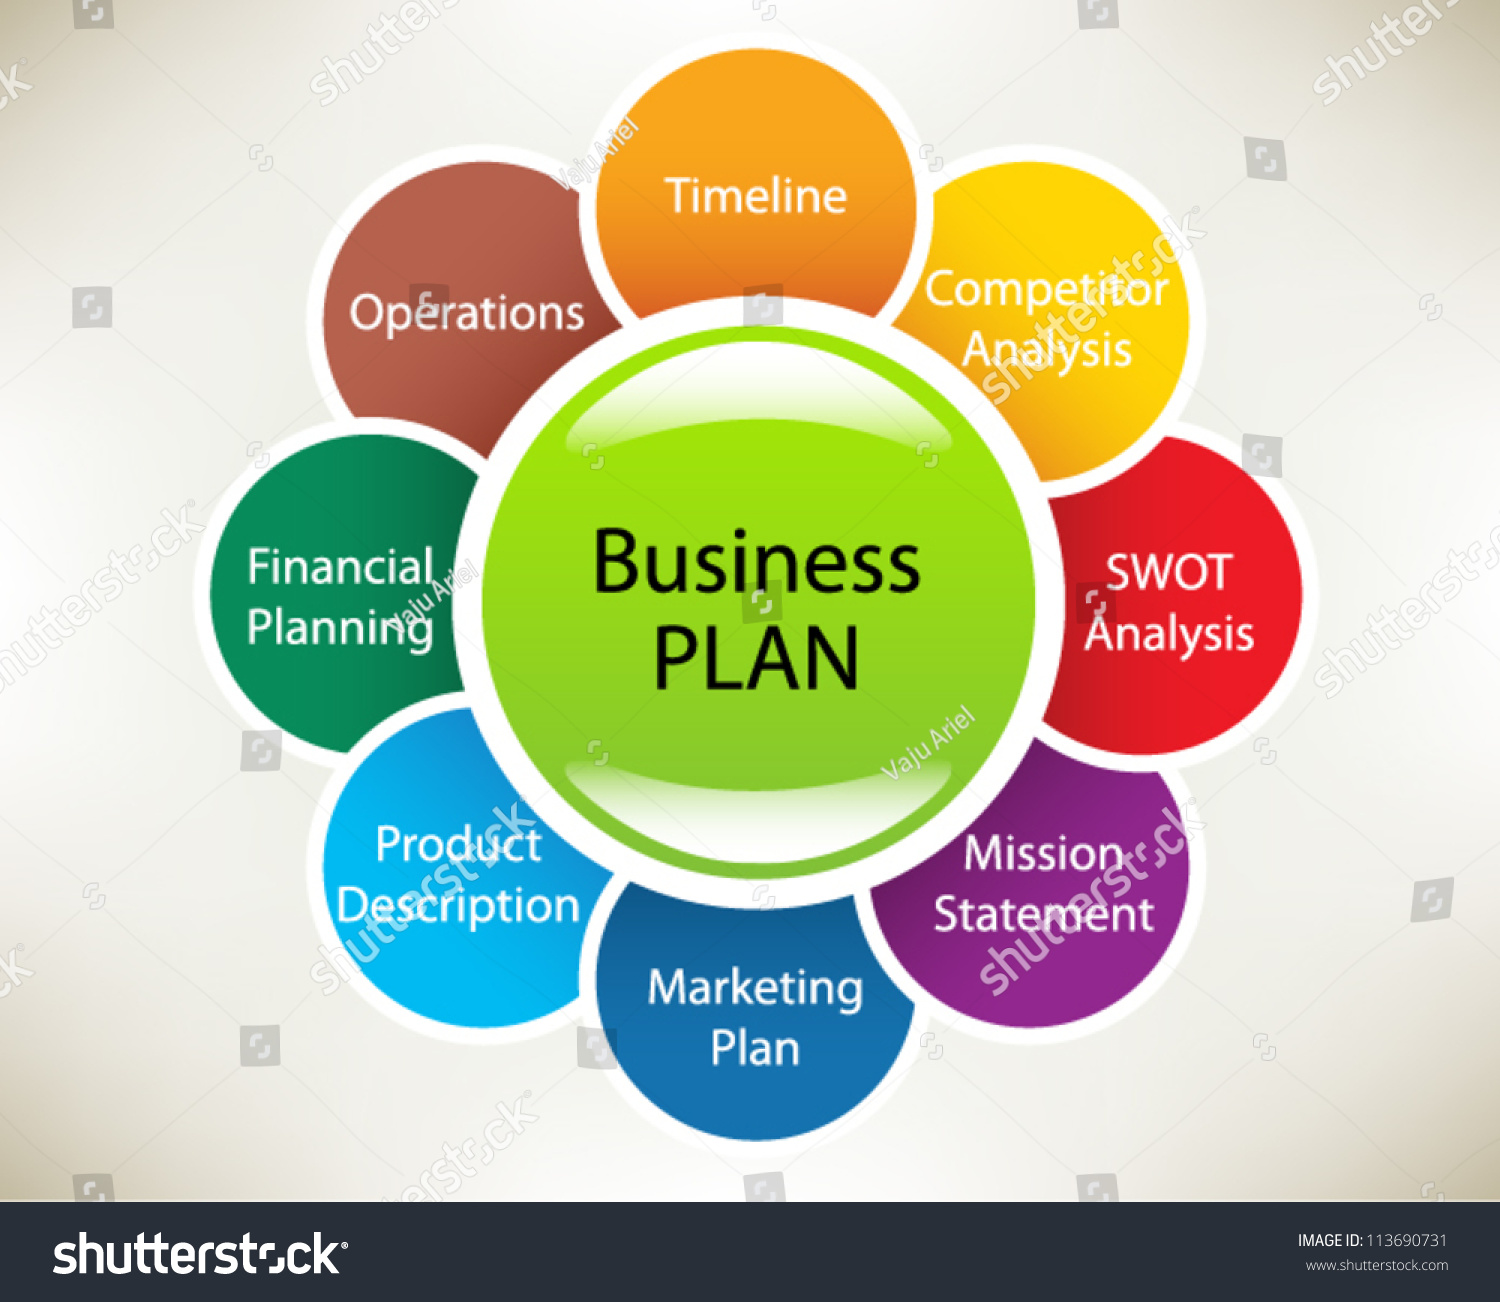 business plan sphere timeline operations financial stock vector